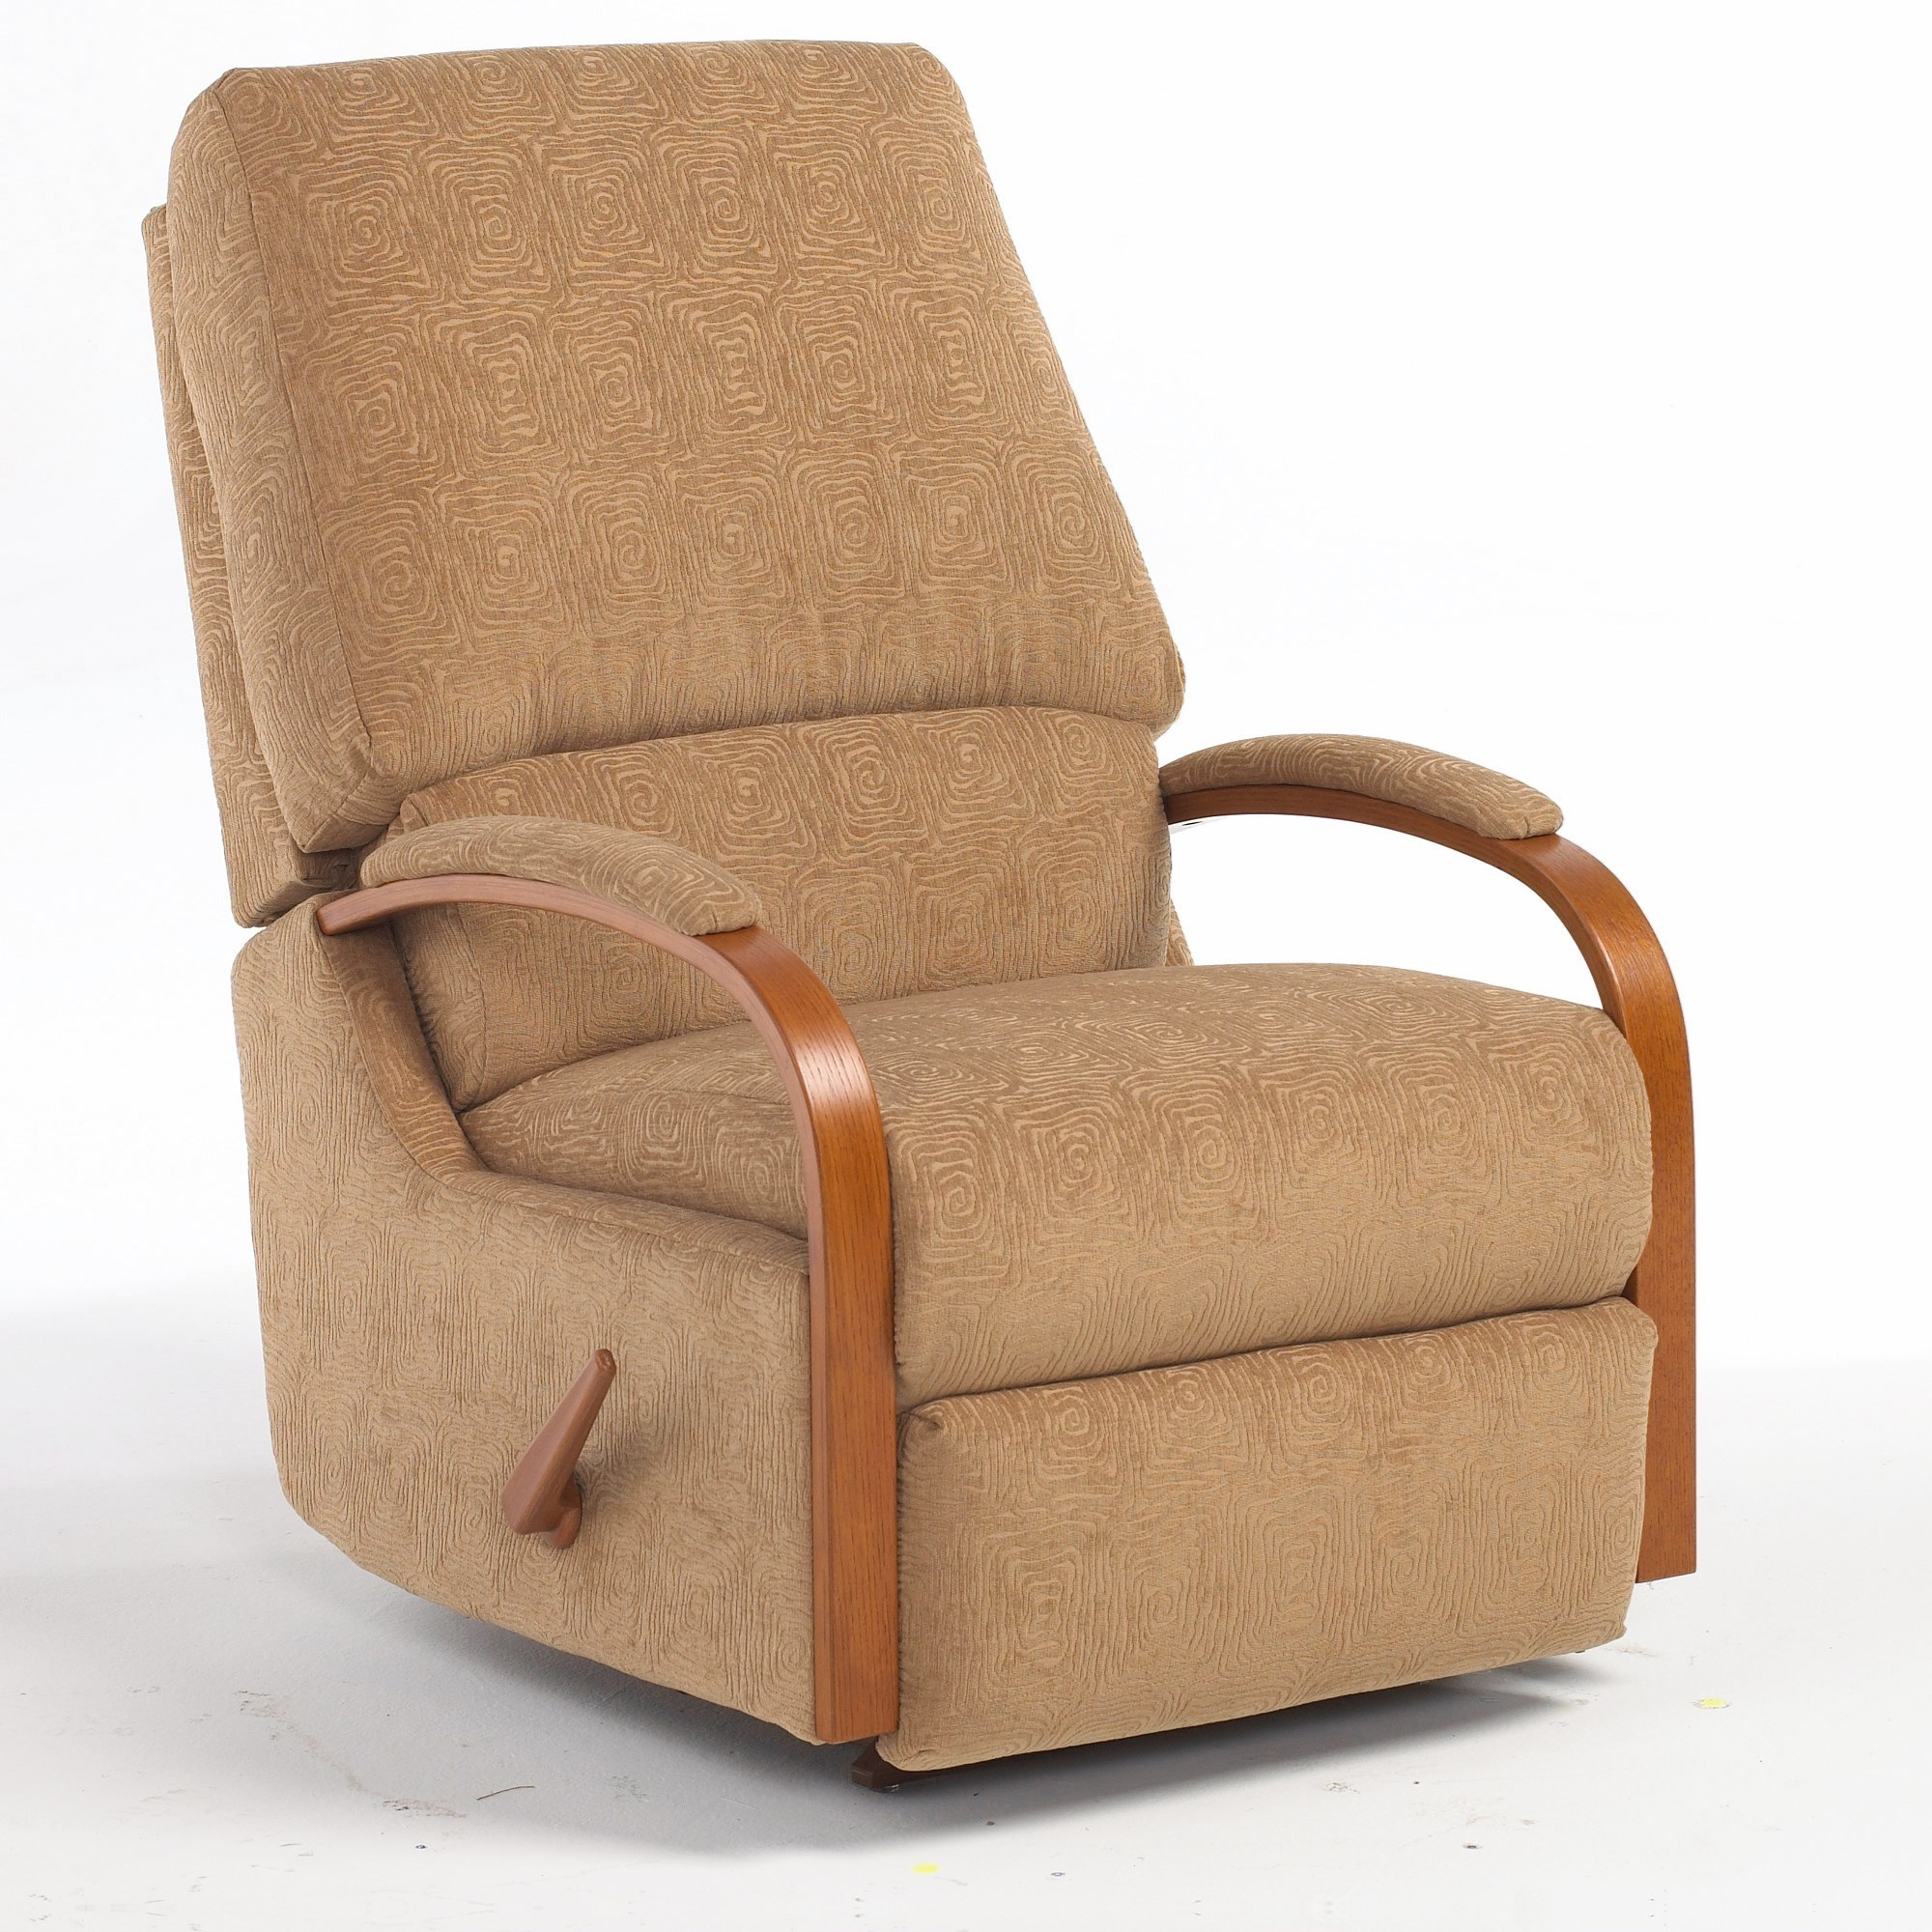 Swivel Rocker Recliner Chair Medium Recliners Pike Swivel Rocking Reclining Chair By Best Home Furnishings At Dunk Bright Furniture